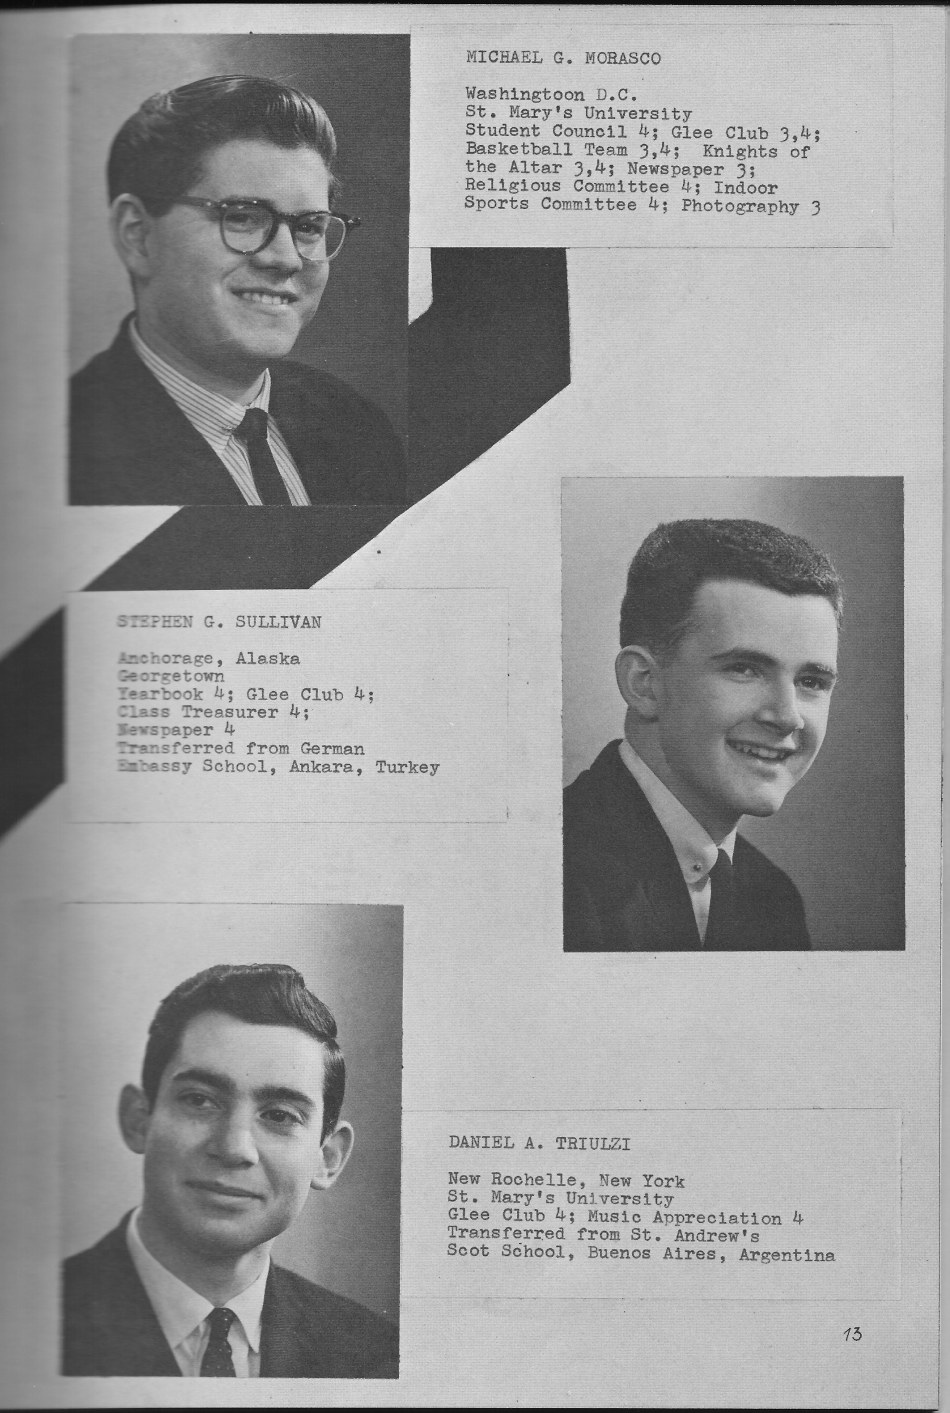 SENIORS Individual Photos 2 for for Villa Saint Jean International School  1964 Yearbook Le Chamois